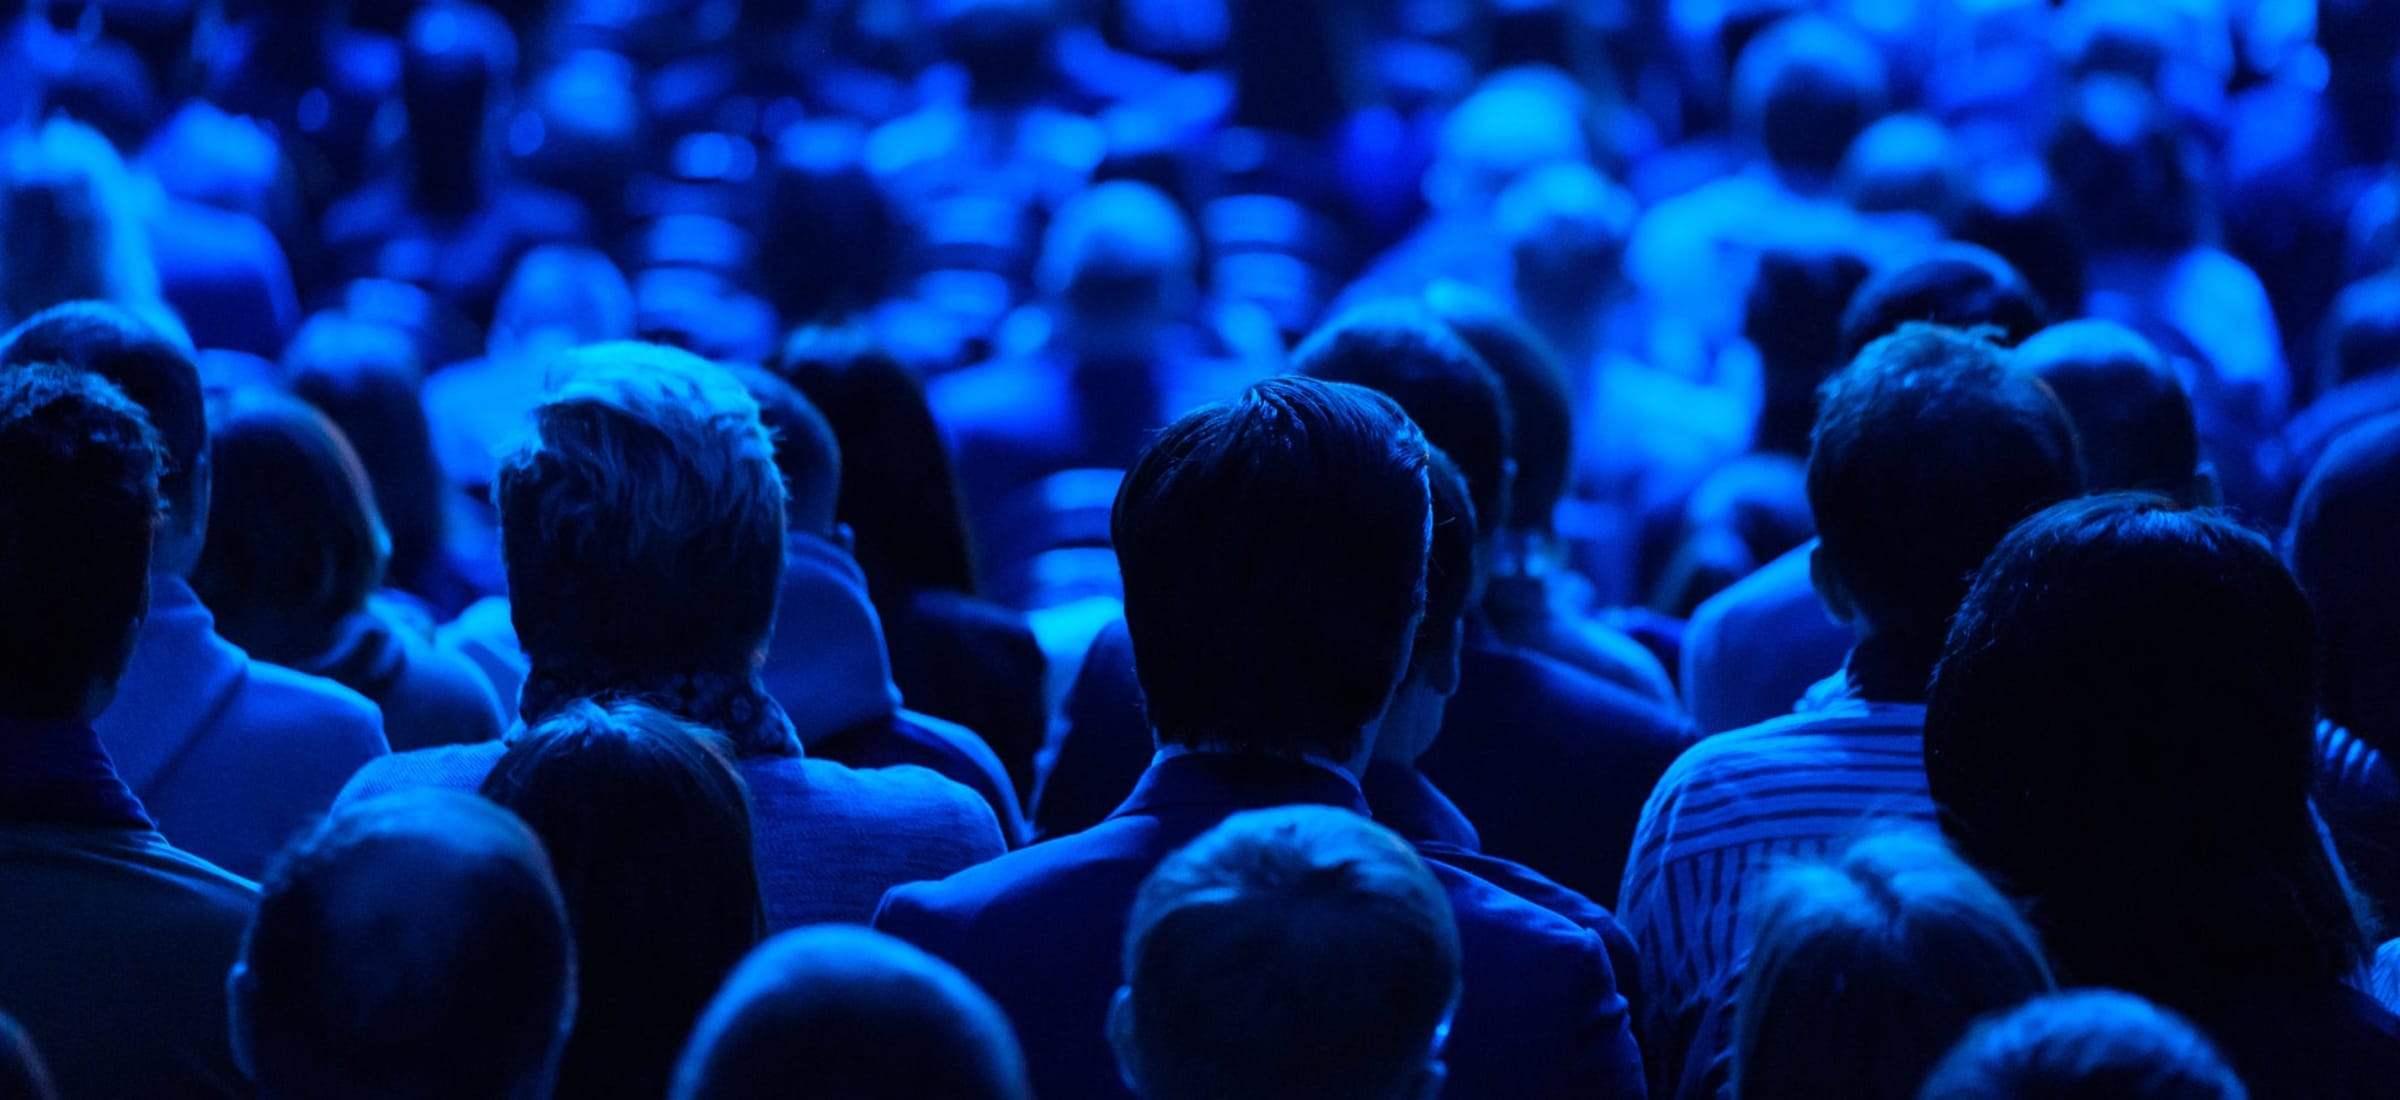 People standing in a crowd looking in the same direction. ominous blue light on them